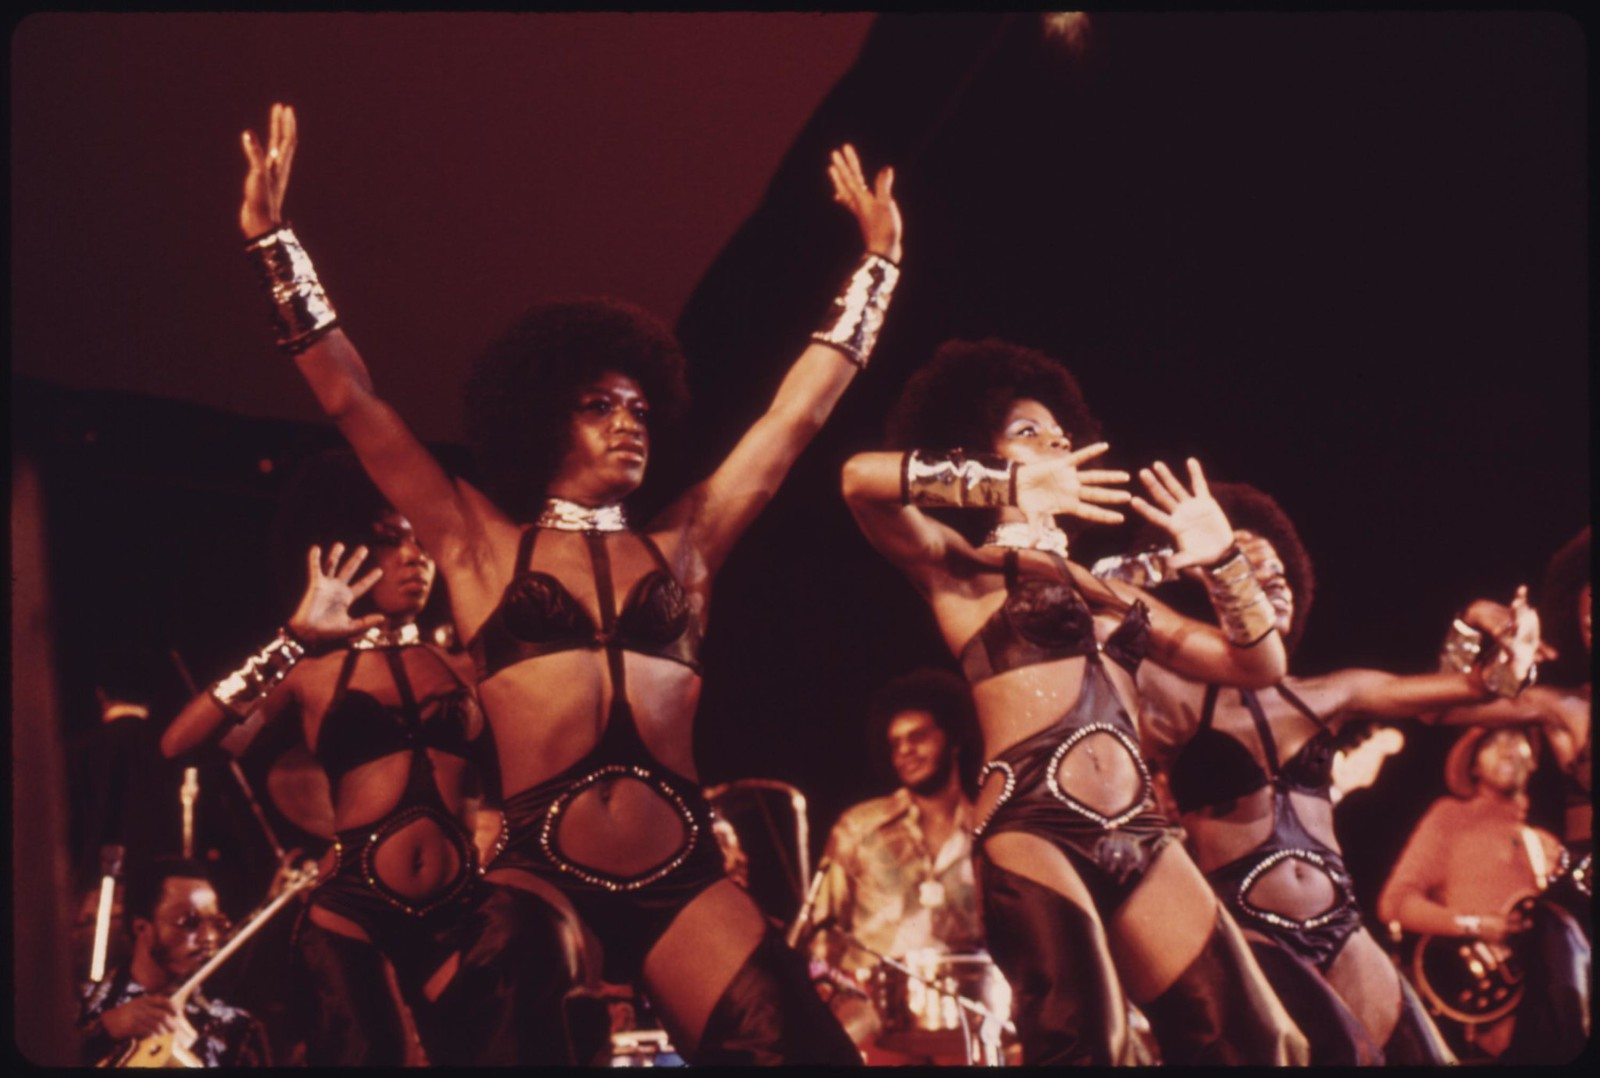 Isaac Hayes Dancers Perform At The International Amphitheater In Chicago, 10/1973 | by The U.S. National Archives